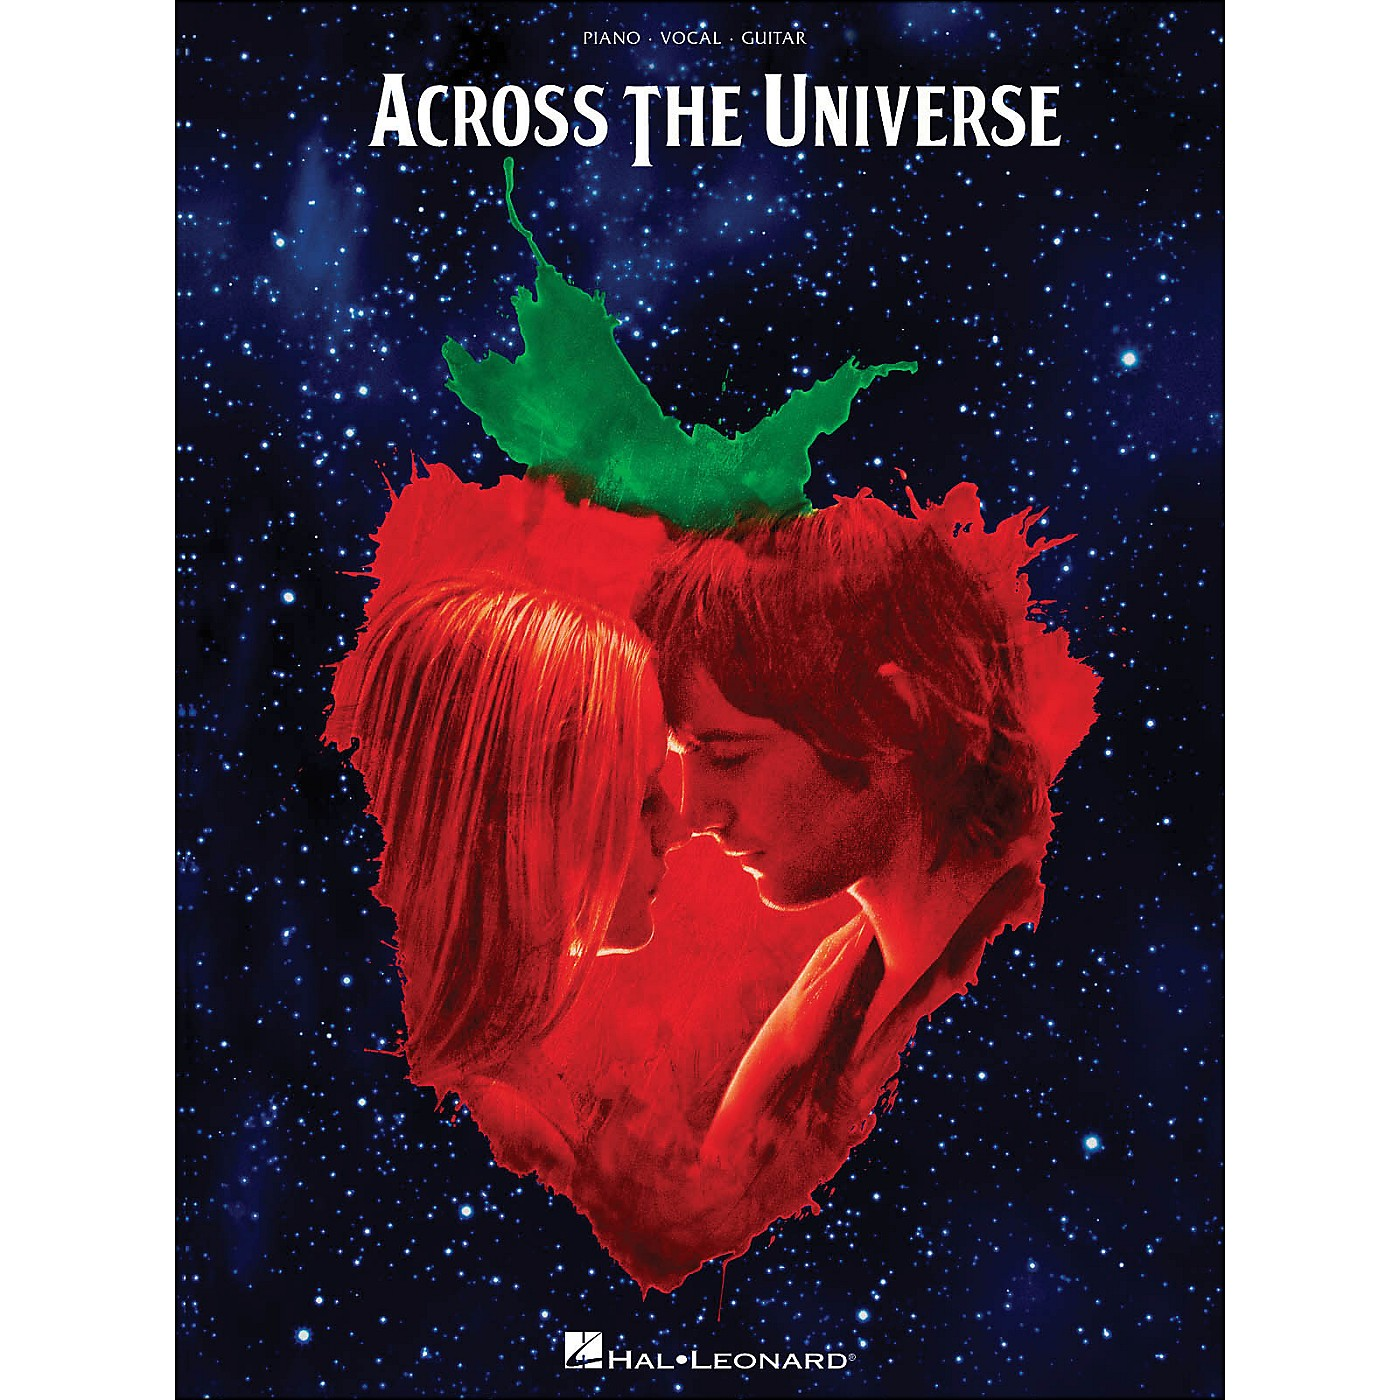 Hal Leonard Across The Universe: Music From The Motion Picture arranged for piano, vocal, and guitar (P/V/G) thumbnail